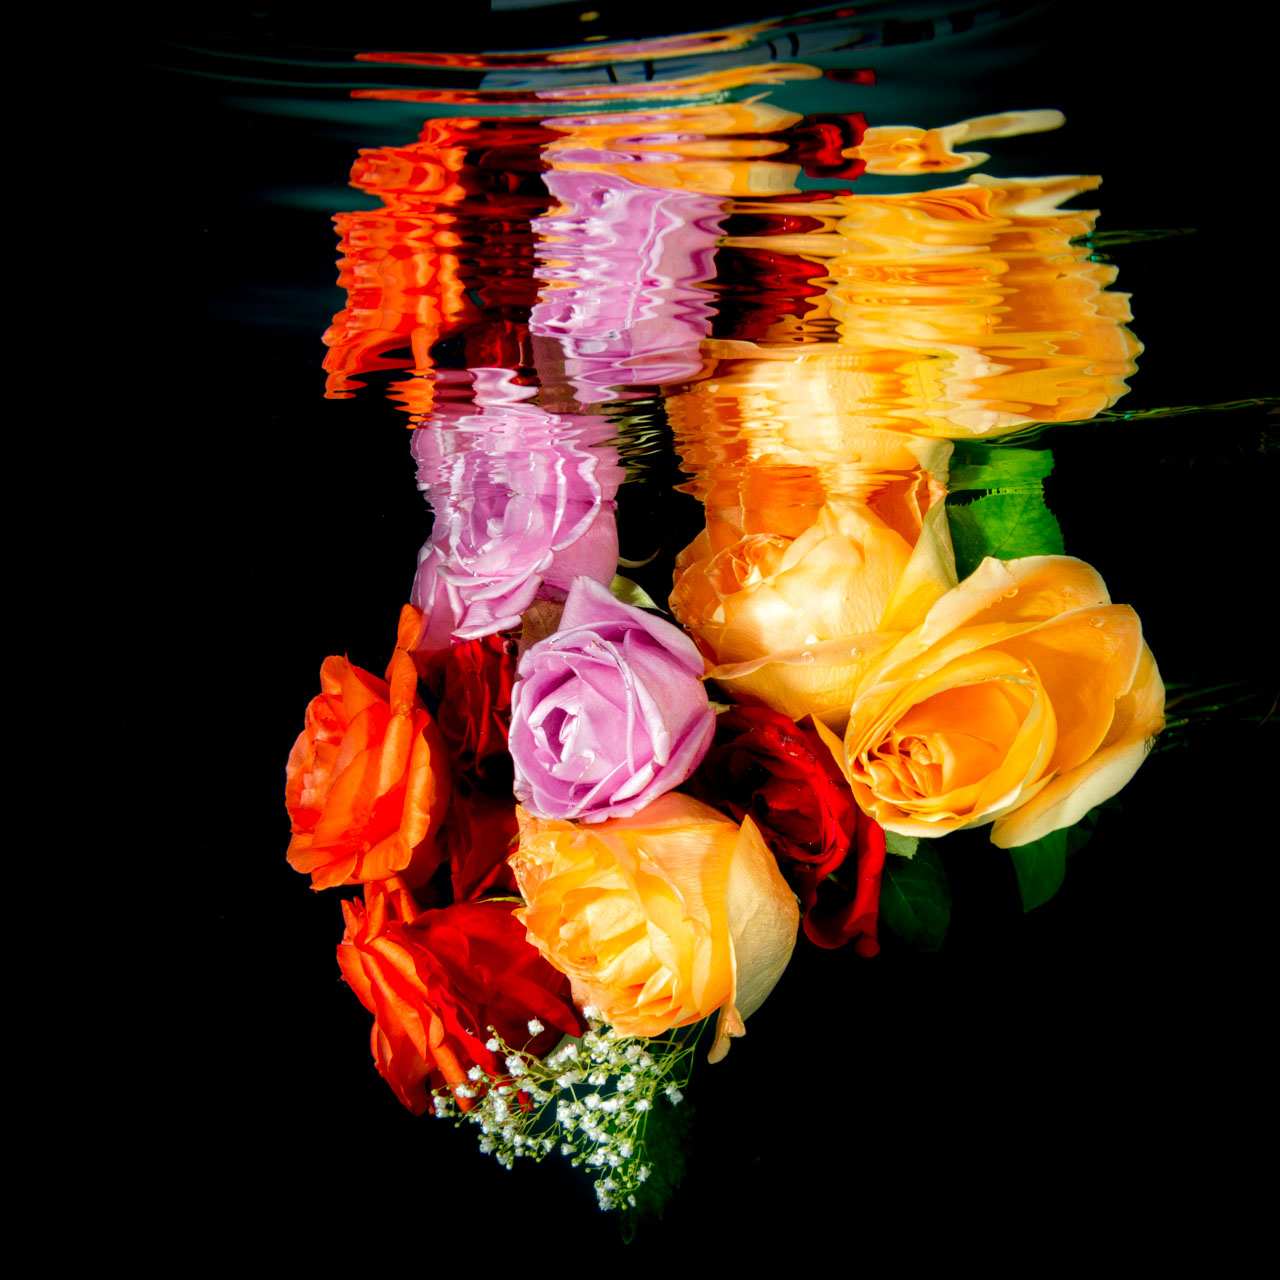 Bouquet of roses underwater image